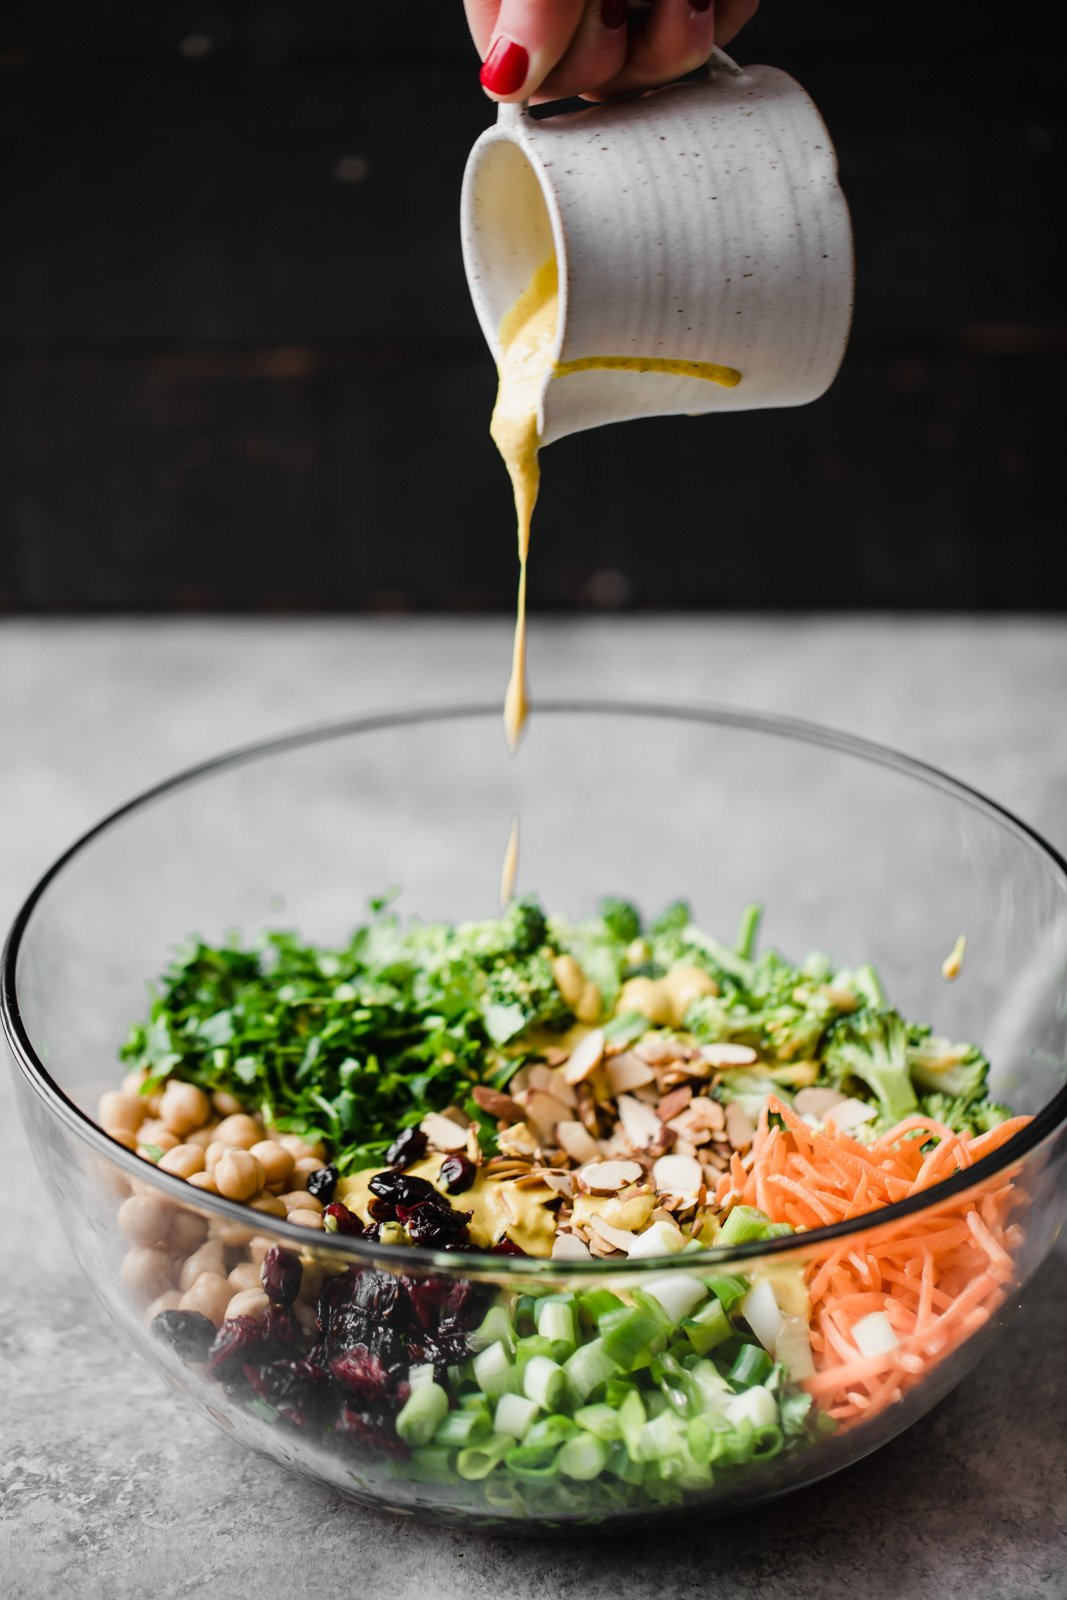 tahini dressing pouring into glass bowl with salad